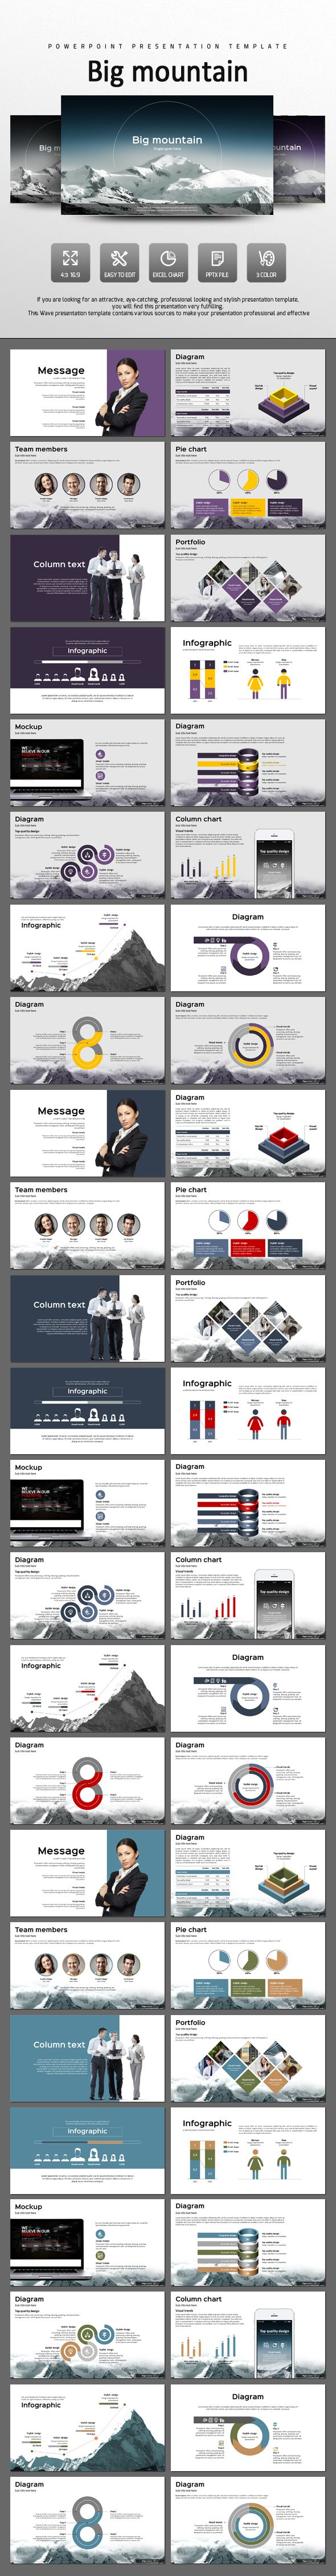 Big Mountain - #PowerPoint #Templates Presentation Templates Download here: https://graphicriver.net/item/big-mountain/14442476?ref=alena994